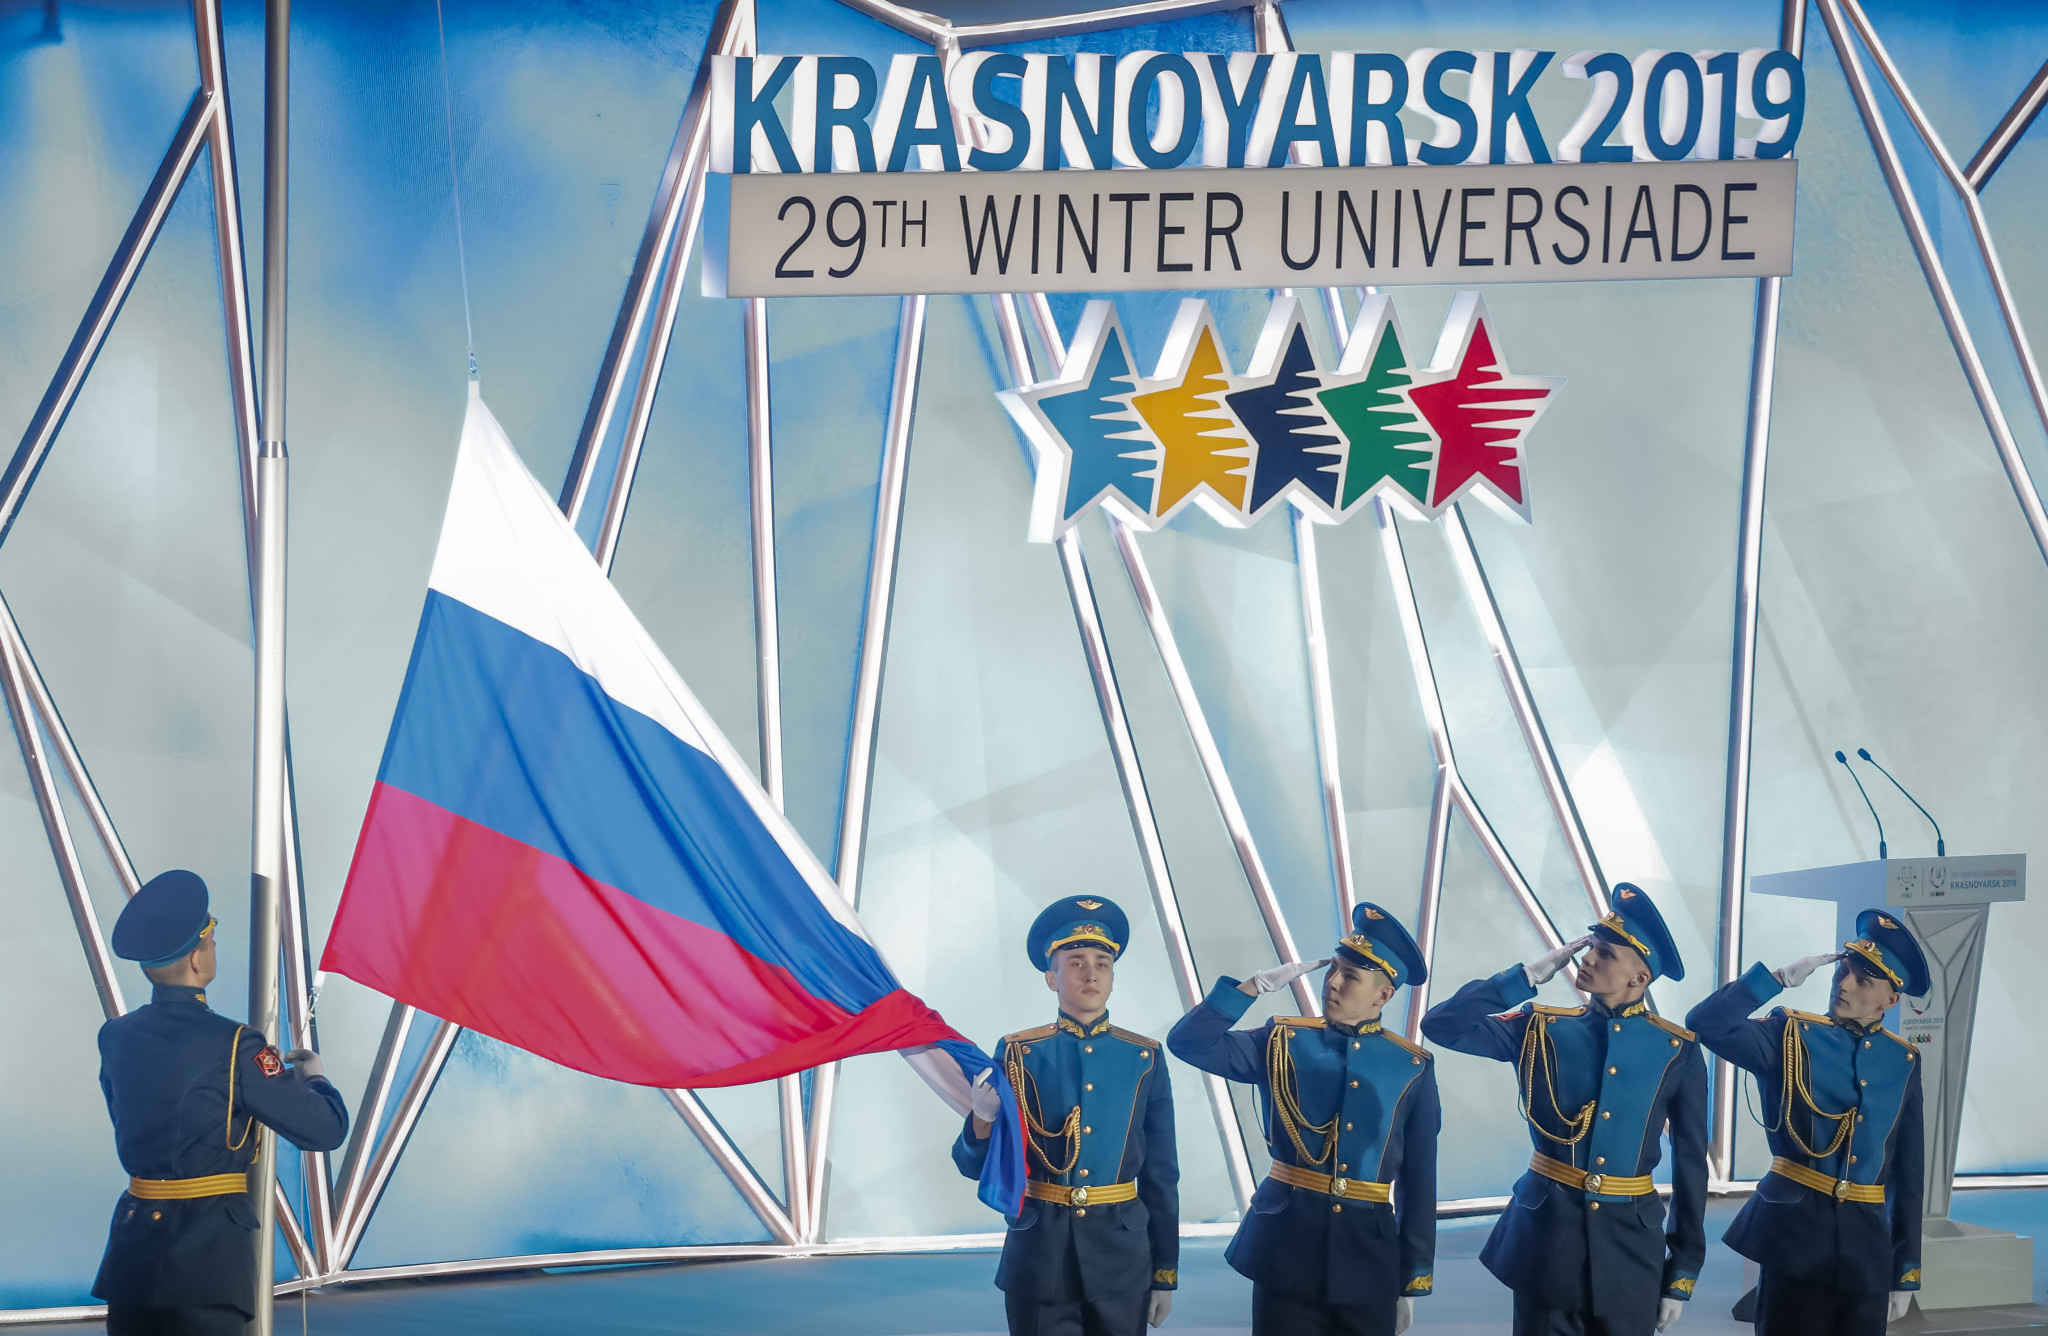 Krasnoyarsk 2019 was the 29th Winter Universiade ©Getty Images